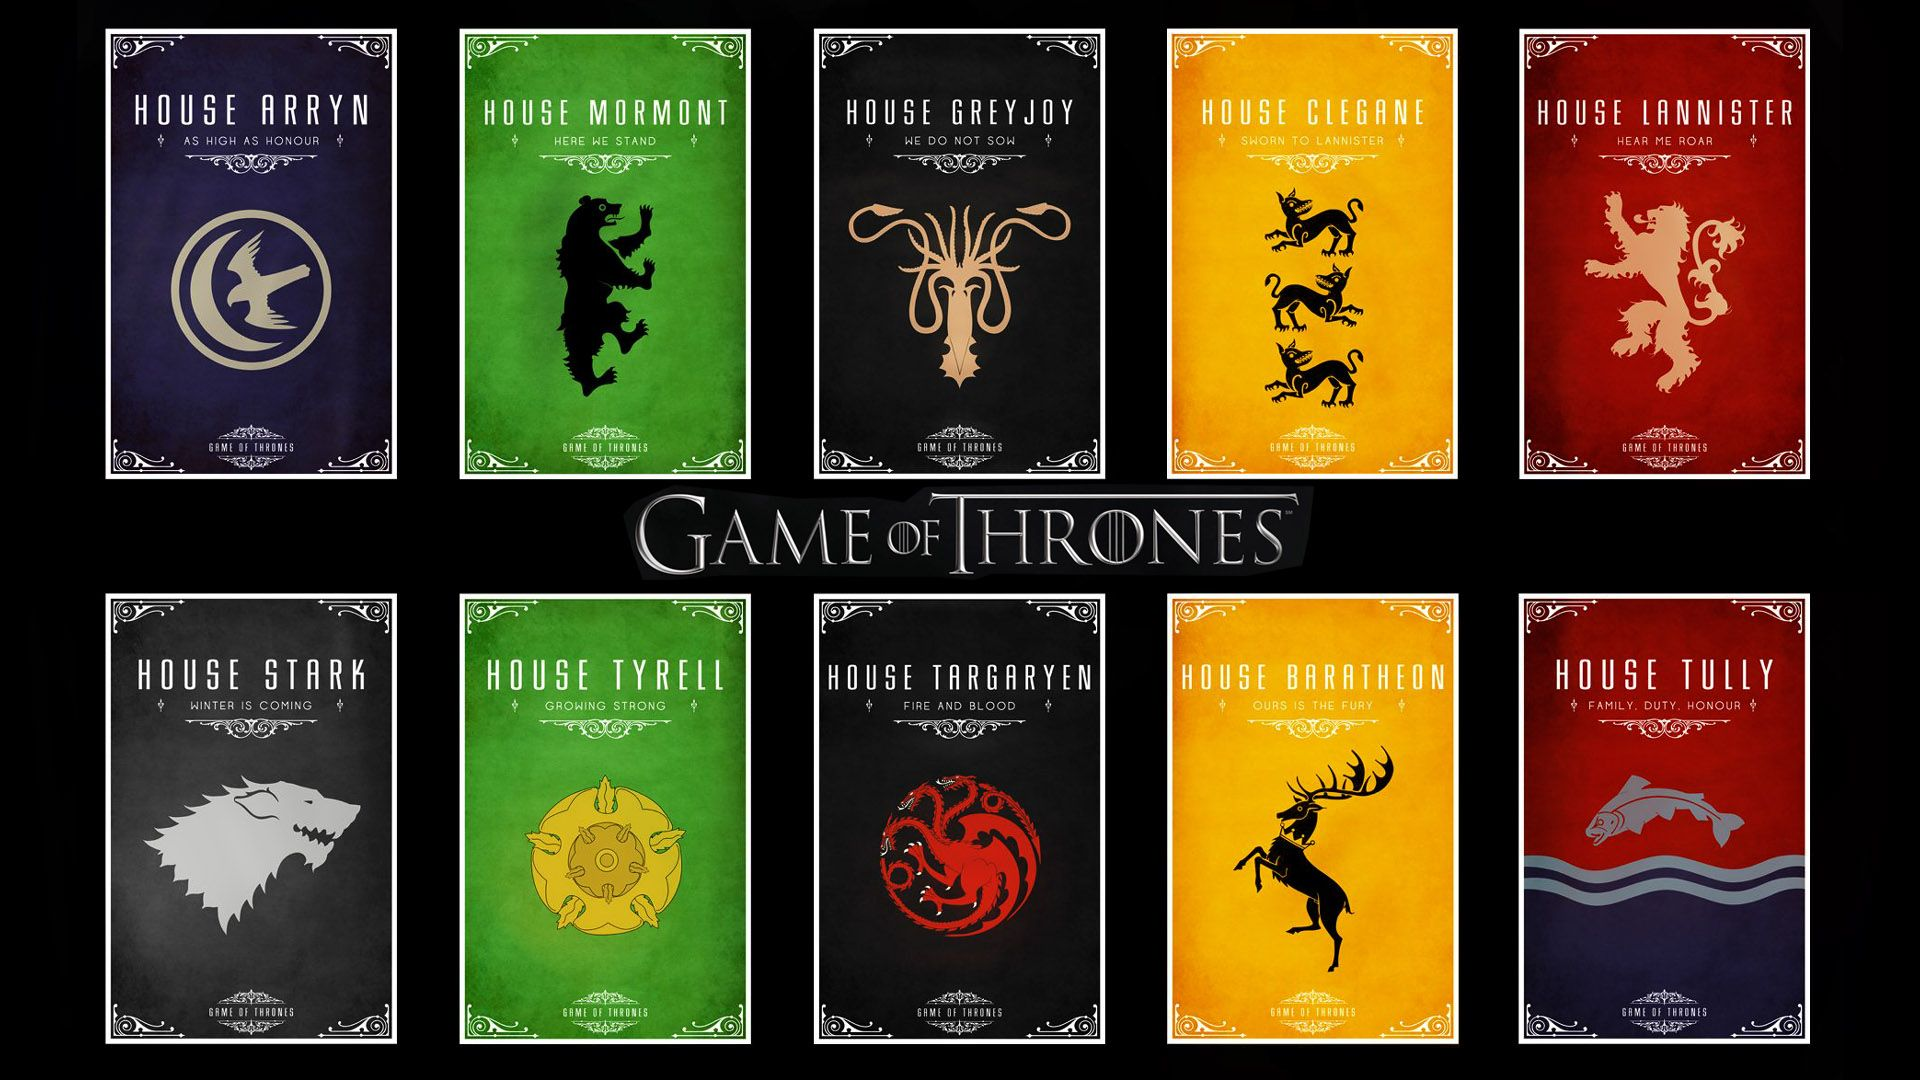 game of thrones house logos game of thrones ten kingdoms 1920x1080 hd image tv series. Black Bedroom Furniture Sets. Home Design Ideas